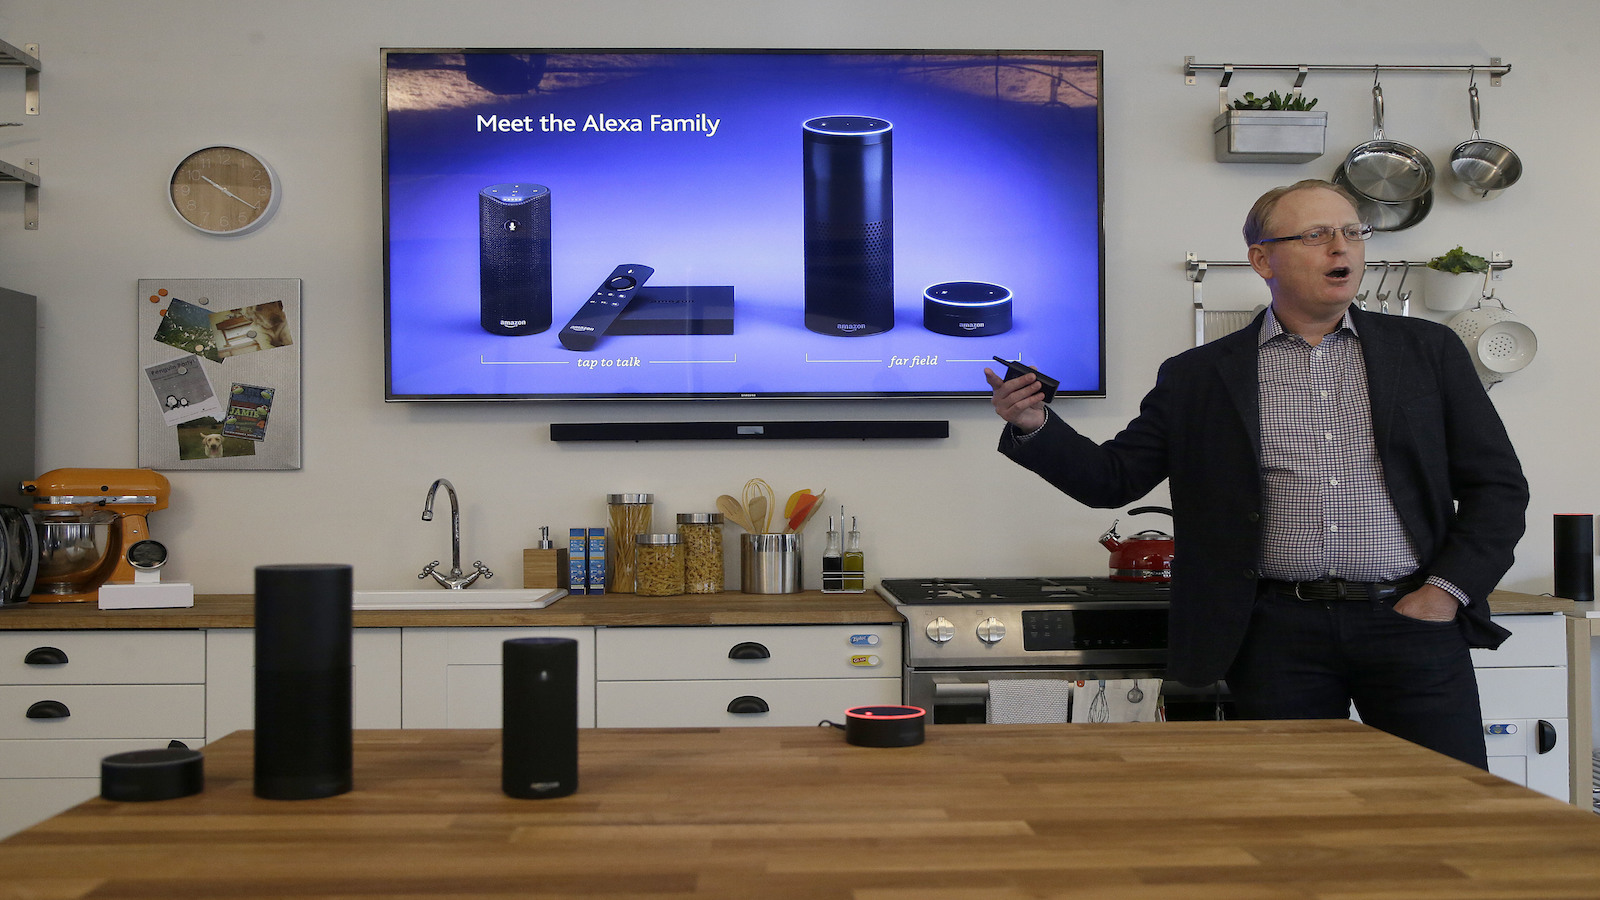 In this Wednesday, March 2, 2016 photo, David Limp, Amazon Senior Vice President of Devices, speaks about Alexa family devices in San Francisco. Amazon.com is introducing two devices, the Amazon Tap and Echo Dot, that are designed to amplify the role that its voice-controlled assistant Alexa plays in people's homes and lives.